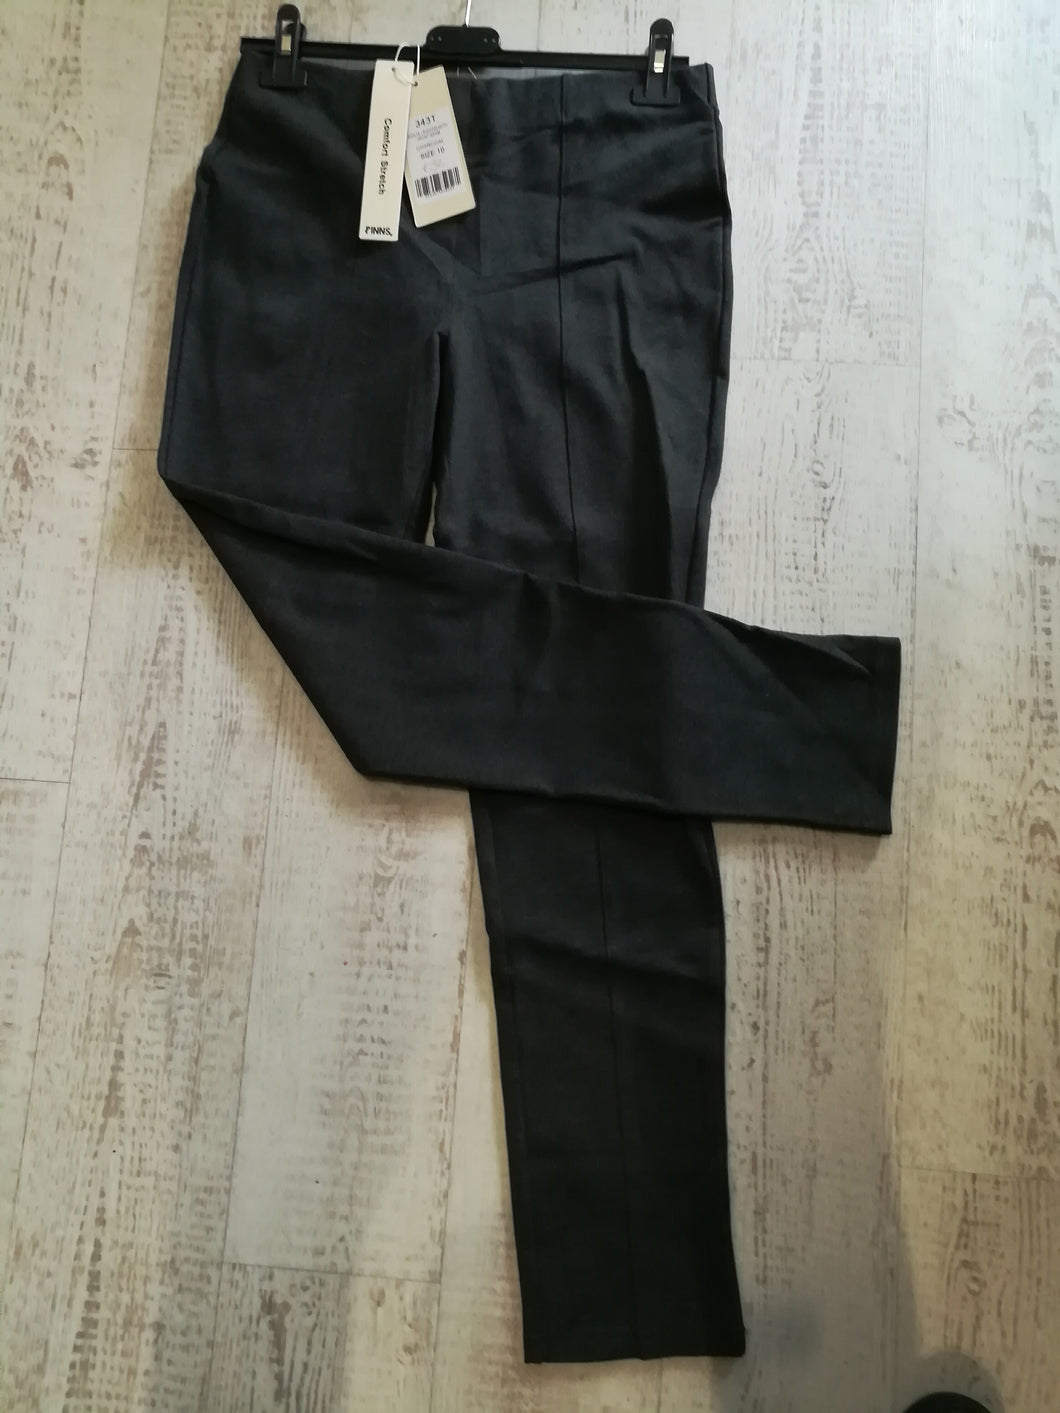 PINNS Trousers - Ponte legging with front seam - size 10 - Charcoal 343T SALE NO RETURN